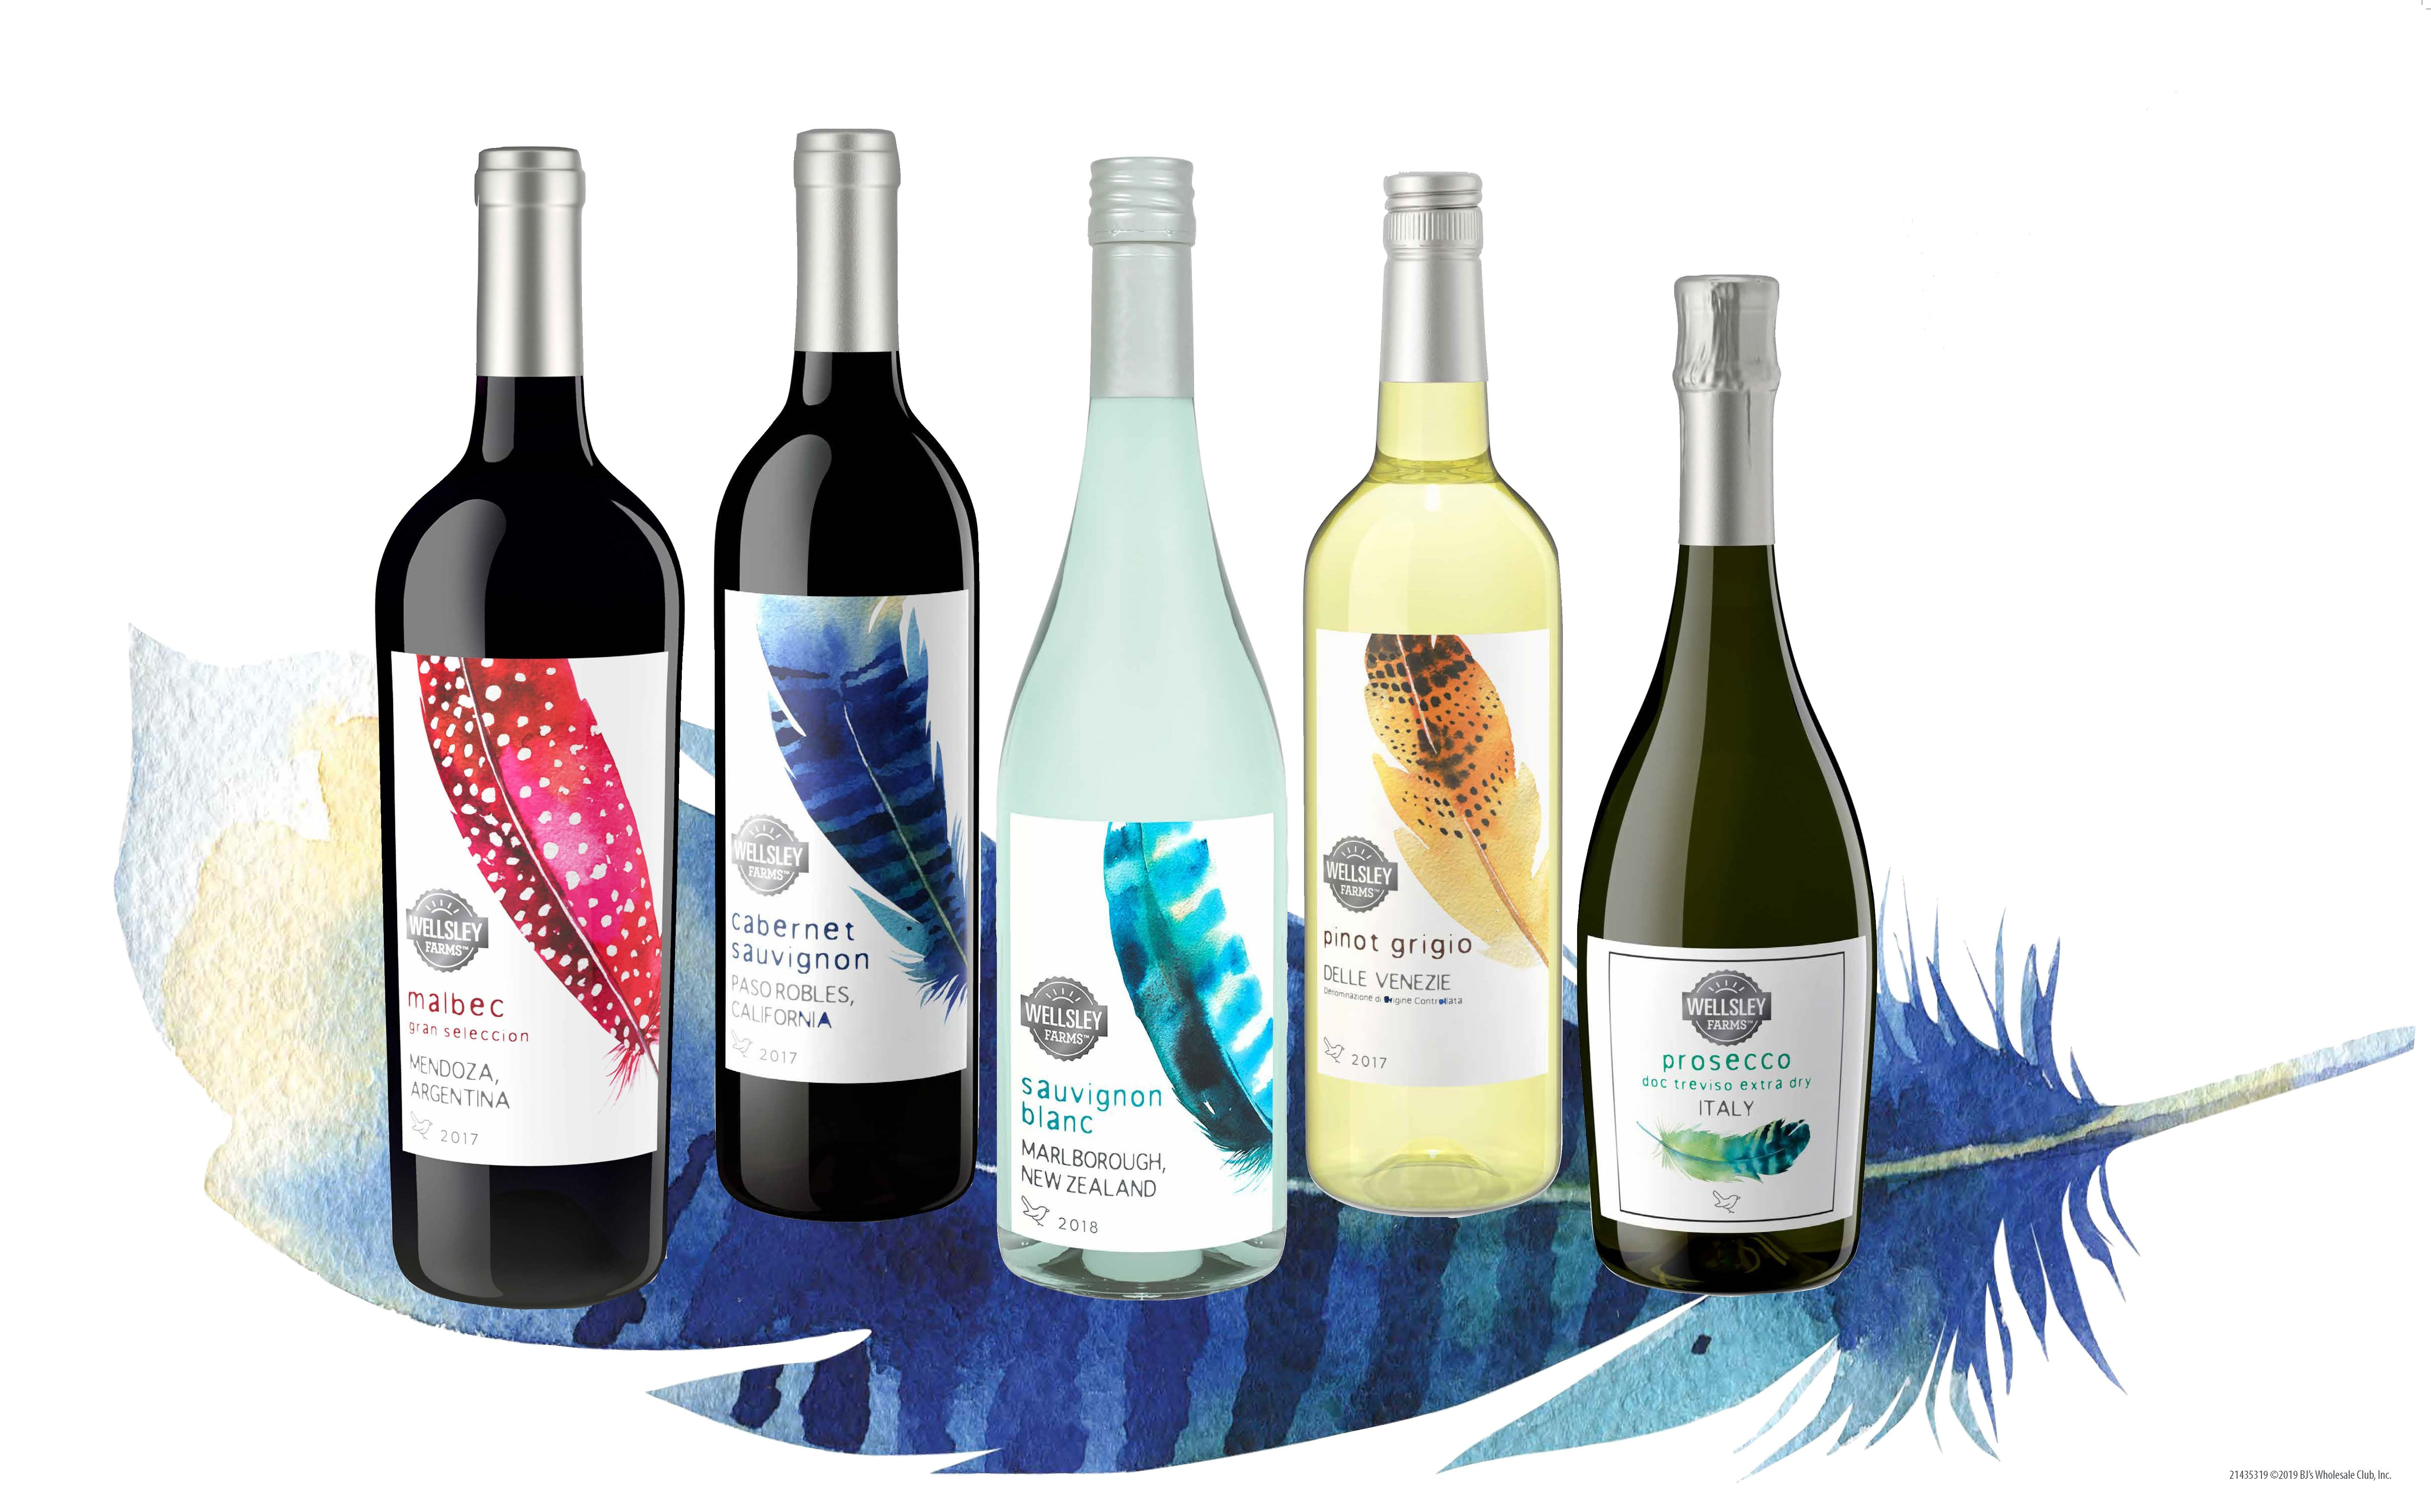 BJ's Wholesale Club Offers New Wellsley Farms Wines From Around the